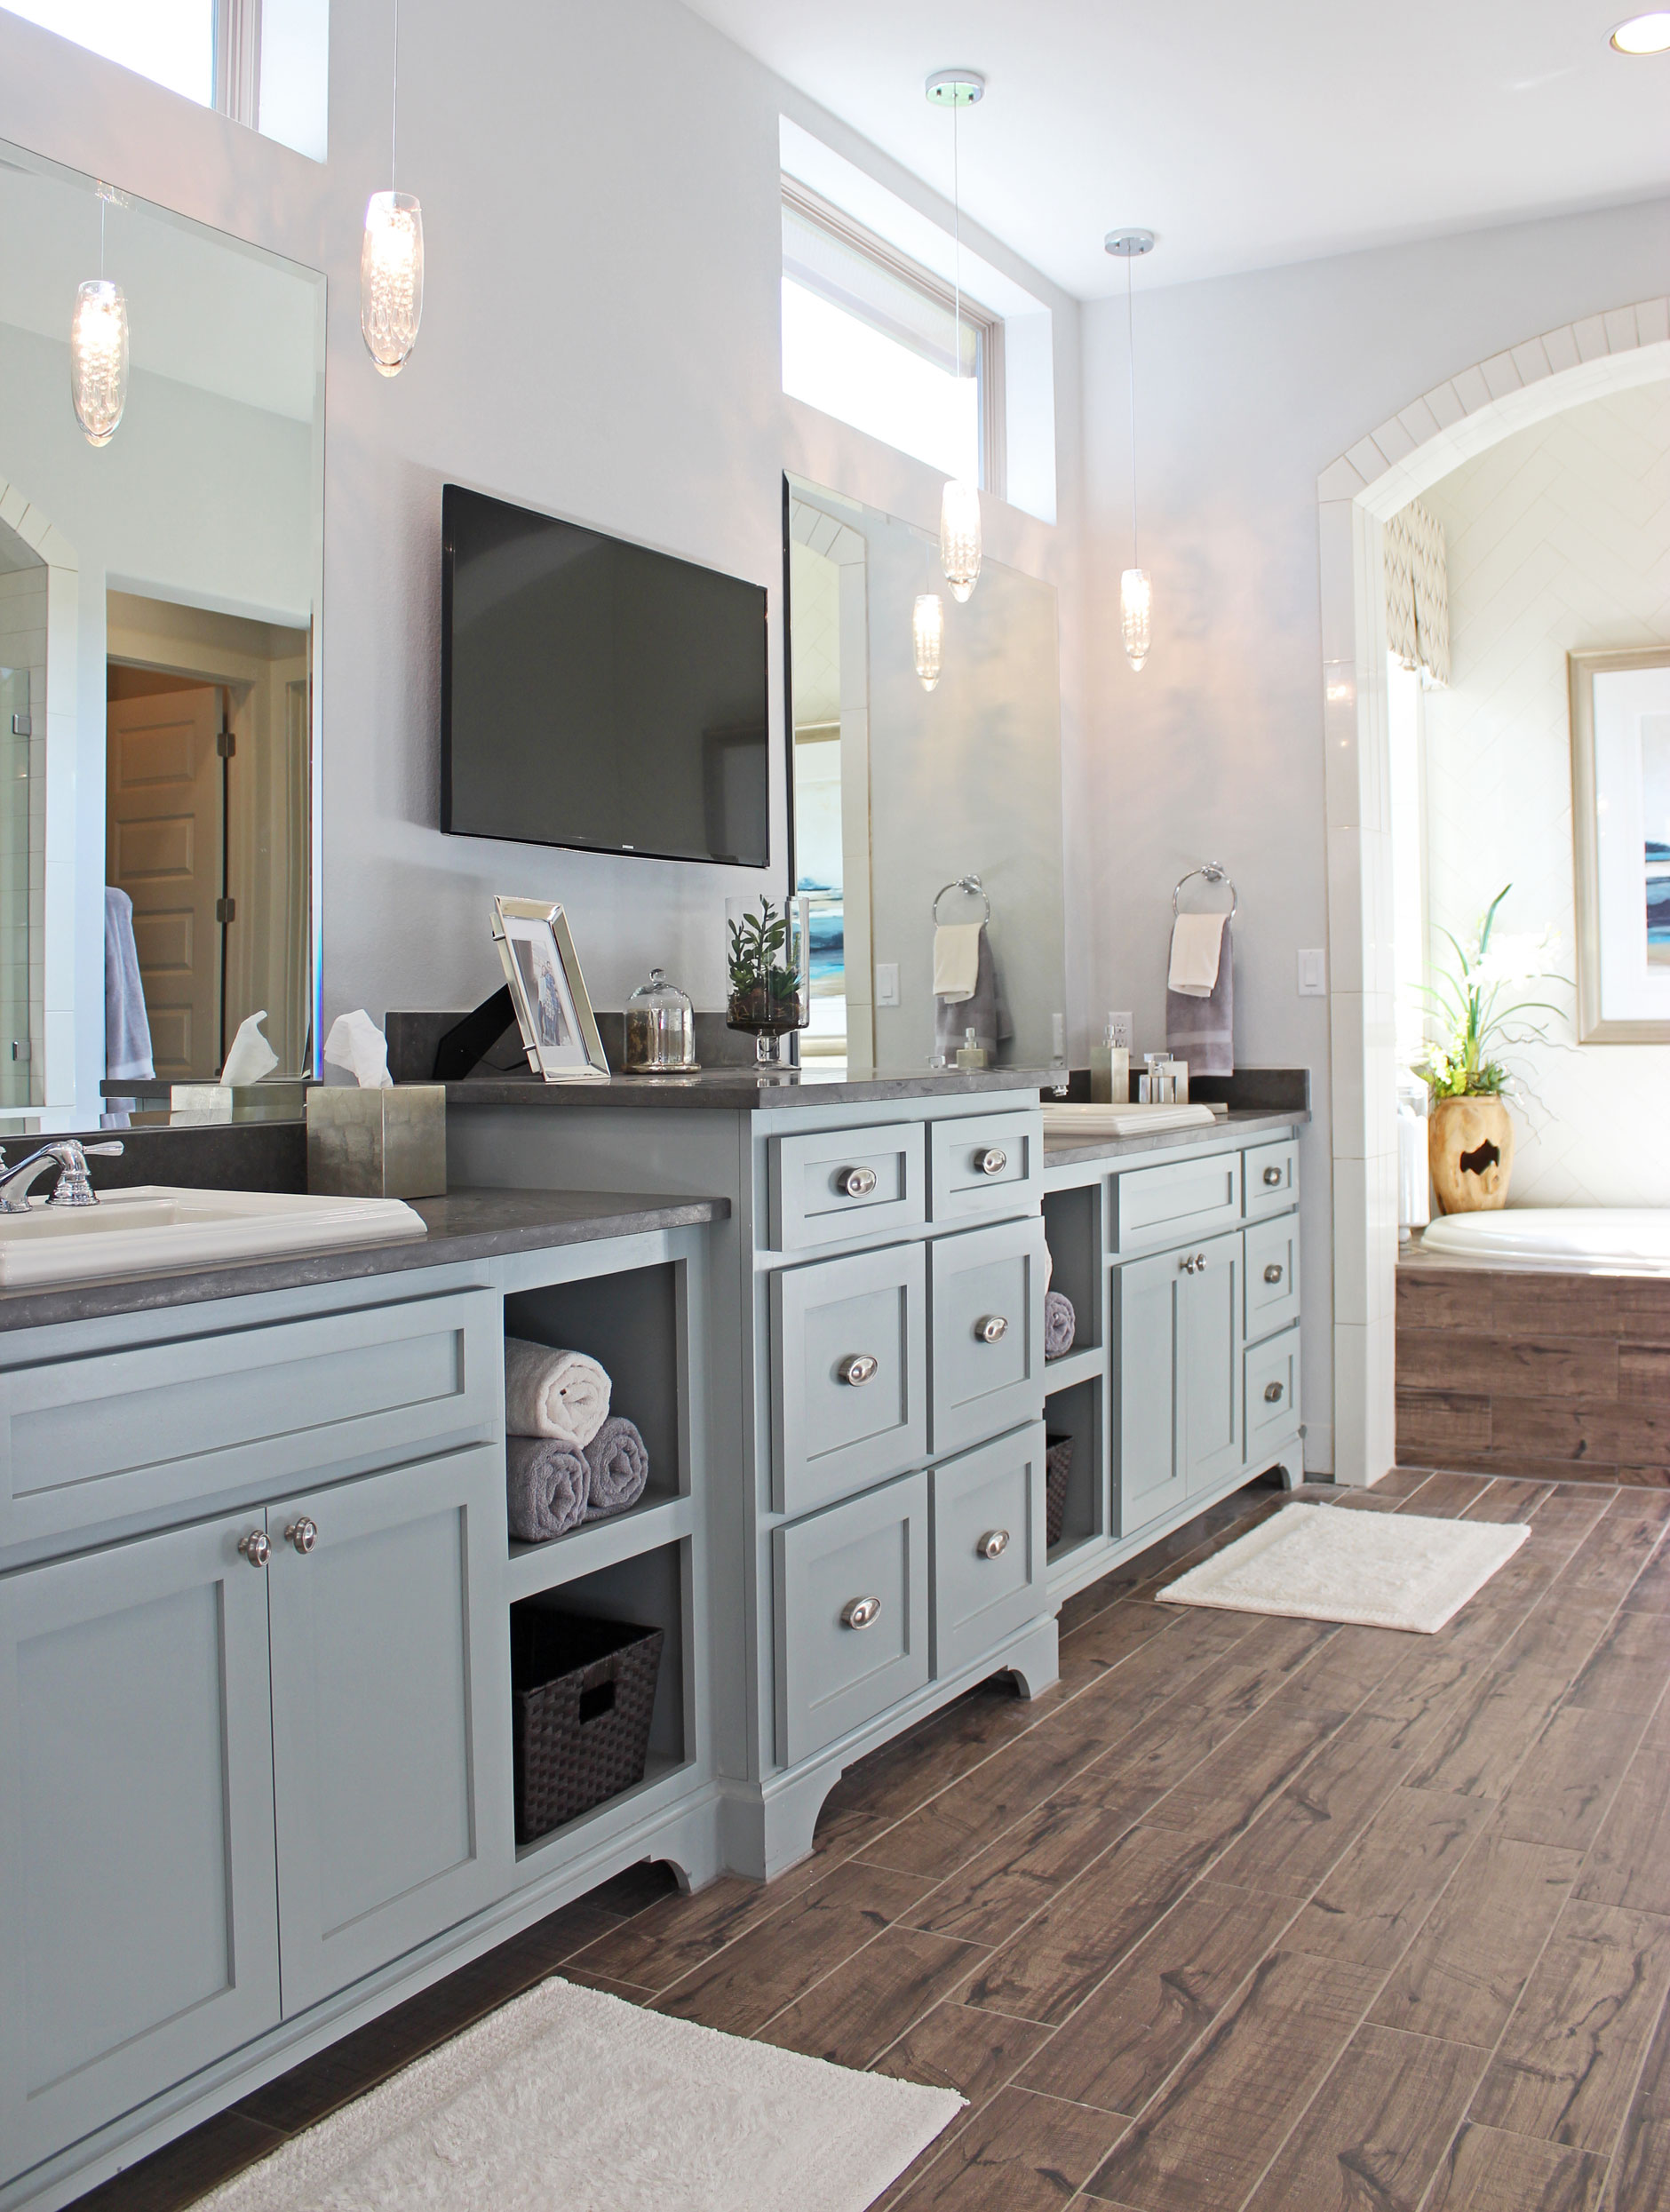 Burrows Cabinets shaker style master bath cabinets painted gray-blue